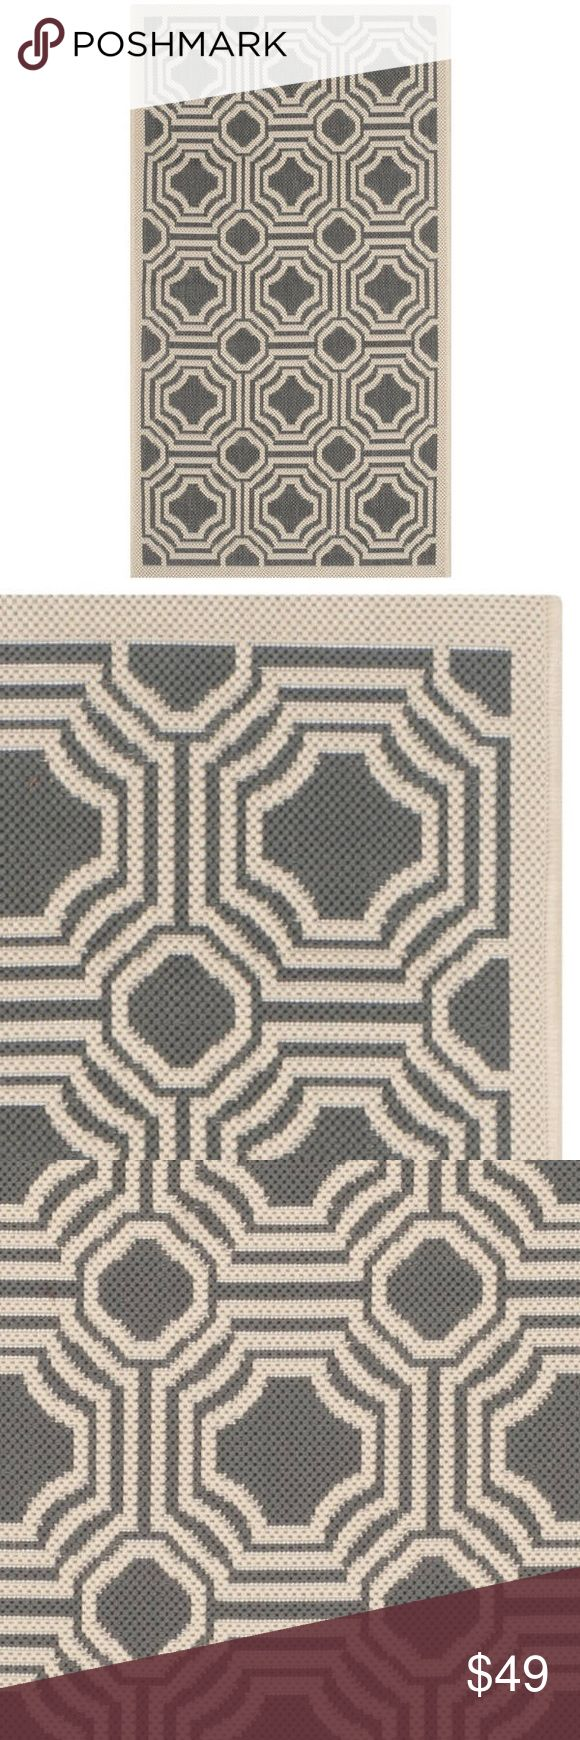 Indoor/ Outdoor Rug 2' x 3'7 Featuring a main accent color of anthracite, this rug is in vogue with its tasteful and bold modern design. A mesmerizing geometric pattern makes this rug a stand-out piece. Its arabesque design elements will work beautifully on a patio, as well as in a kitchen, eating area, or playroom. Suitable for indoor or outdoor settings. Power loomed weave. Pile height is 0.25 - 0.5 inch. Crafted of Polypropylene; latex fee. Contemporary style.  Rug Size: 2' x 3' 7.  NWT…